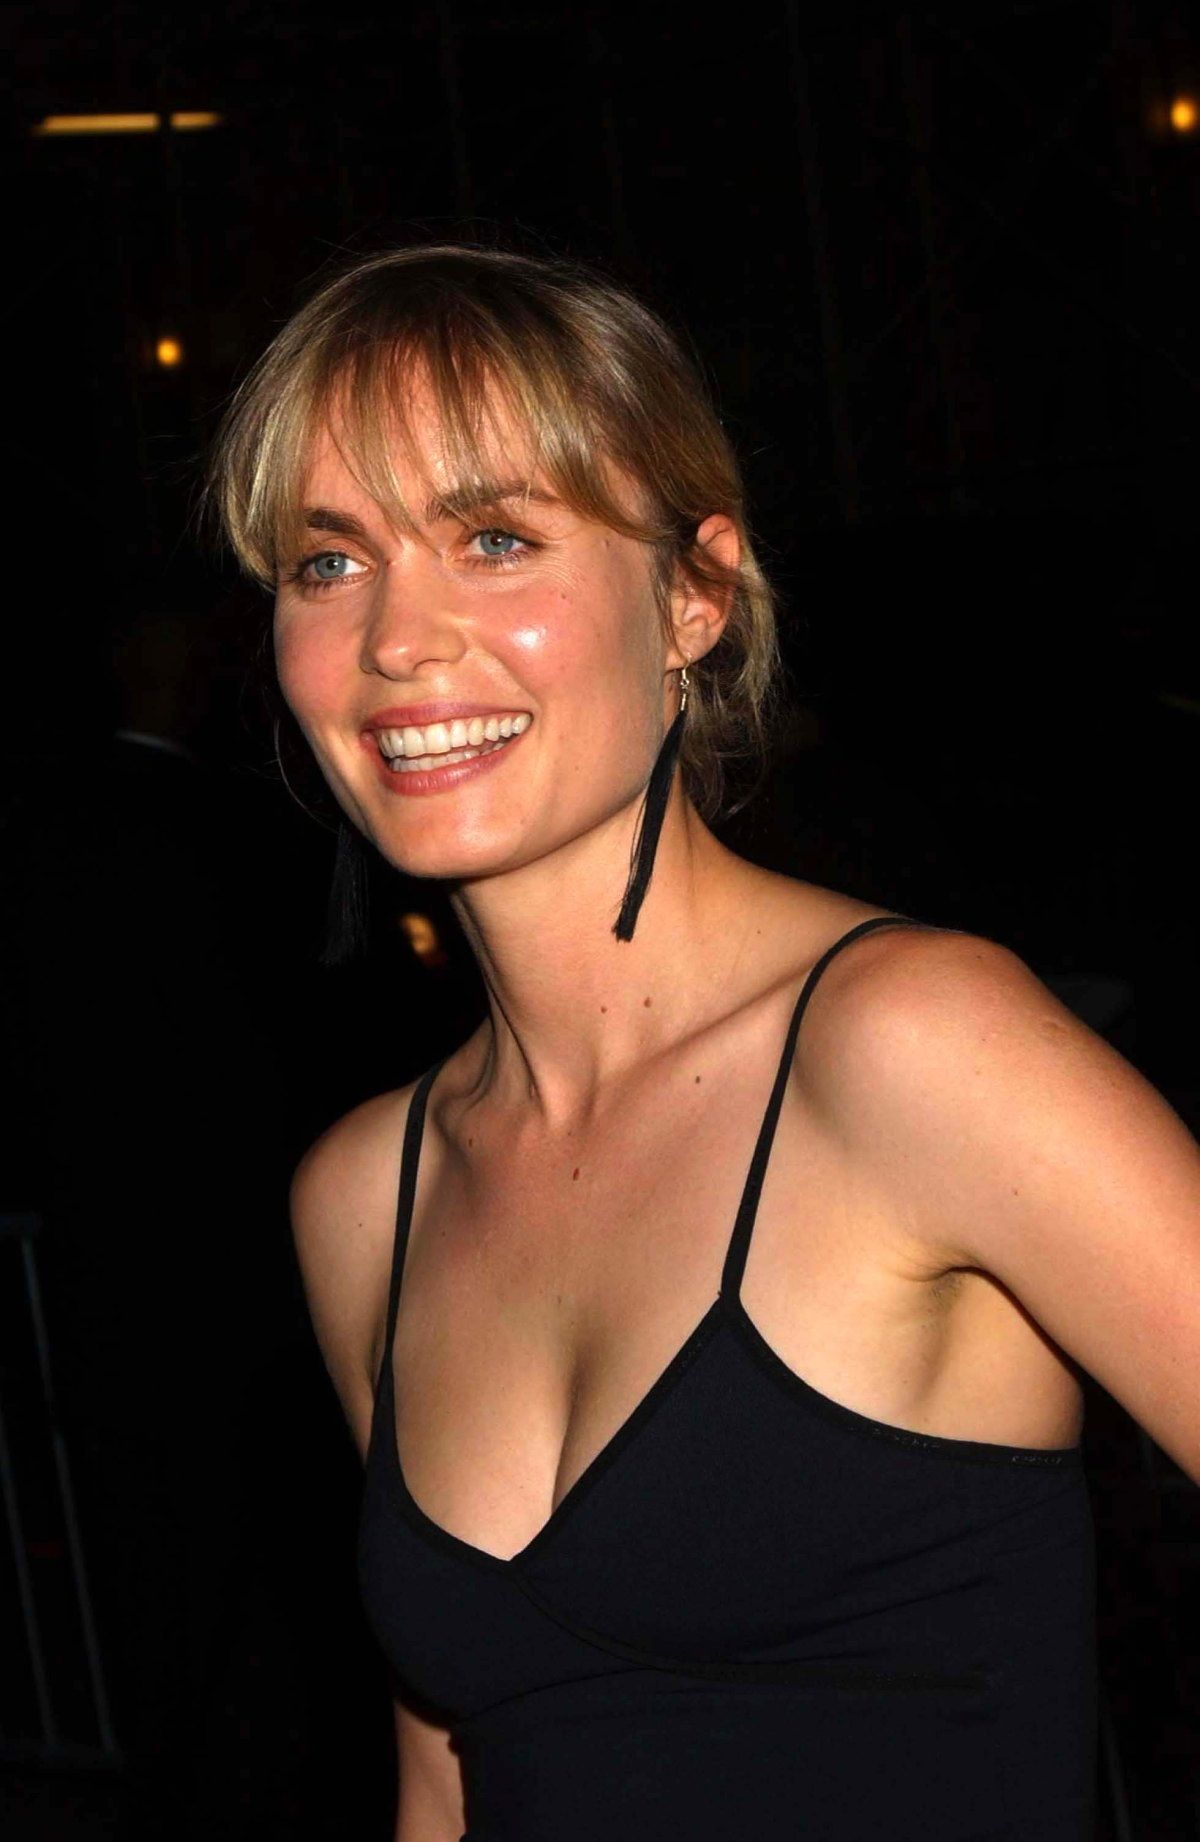 Hot Radha Mitchell naked (49 photos), Pussy, Cleavage, Feet, bra 2019